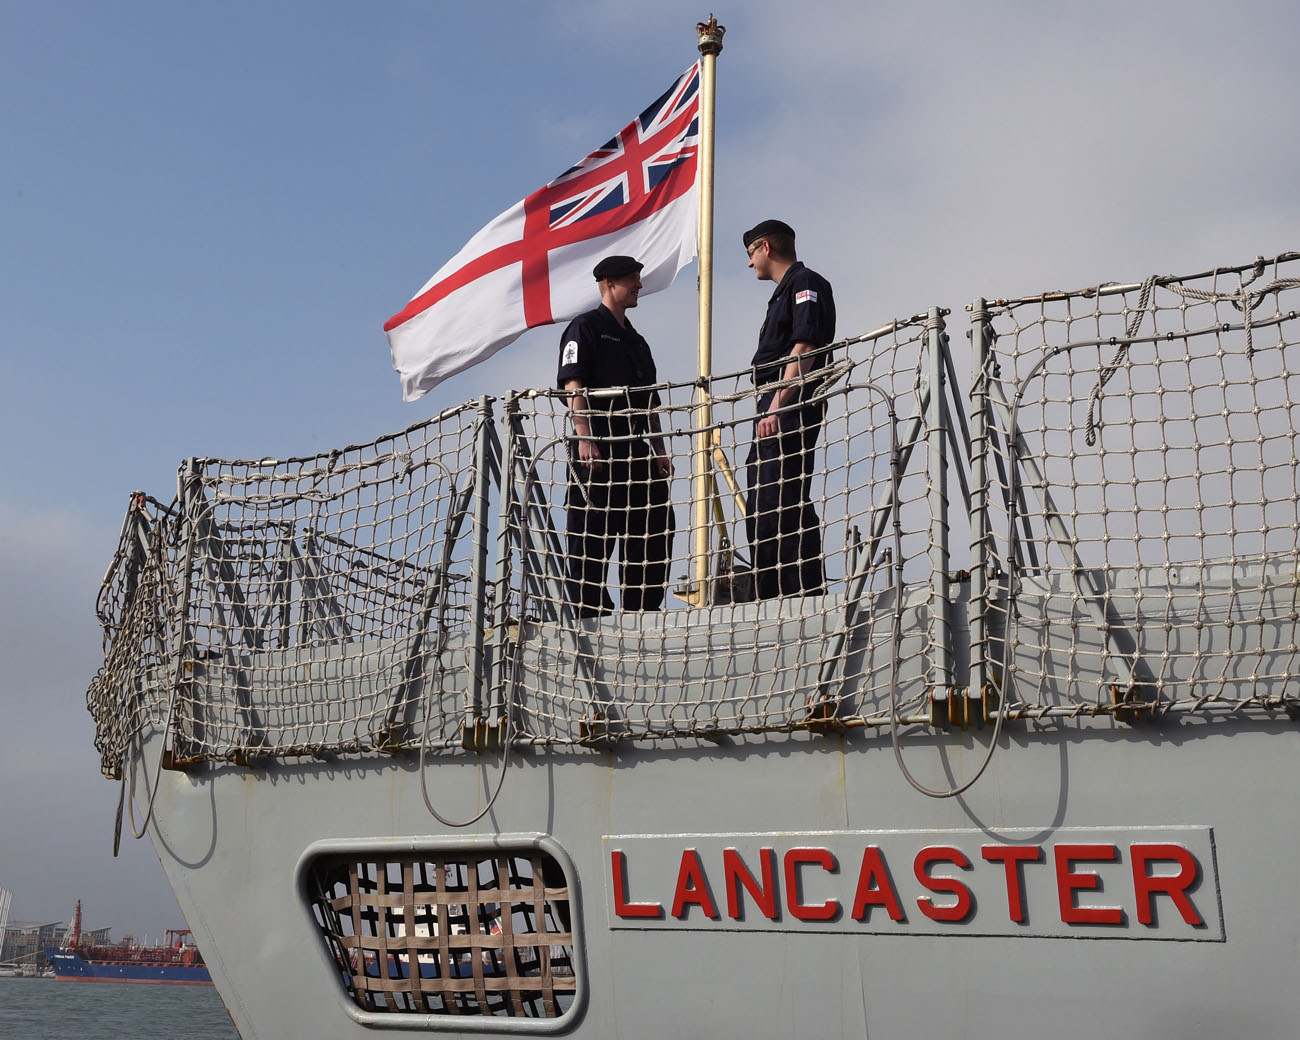 HMS Lancaster will sail in newest navy uniform for 70 years